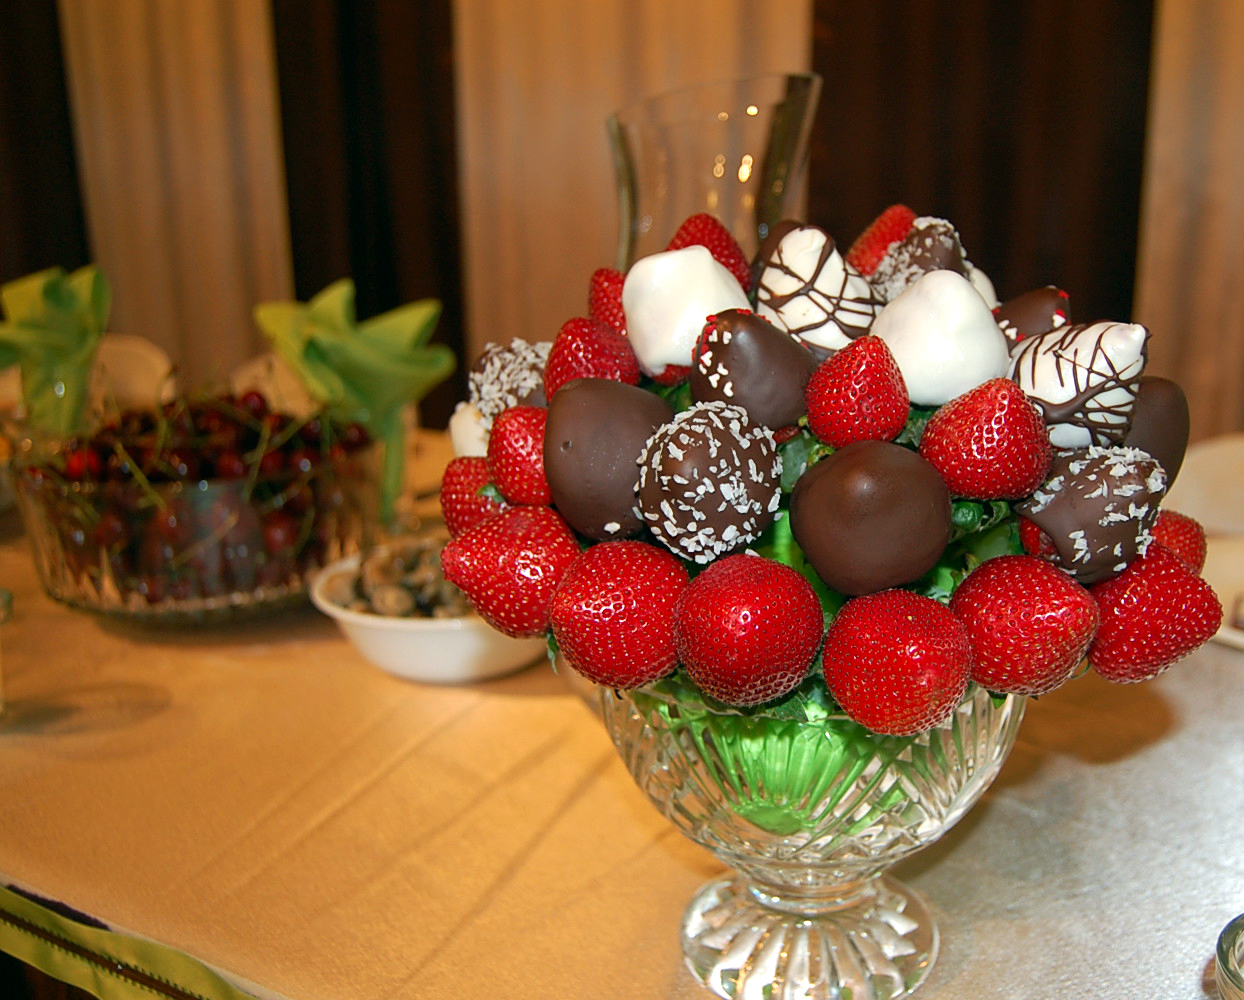 One Sunny Home: DIY: Fancy Chocolate-Covered Strawberries